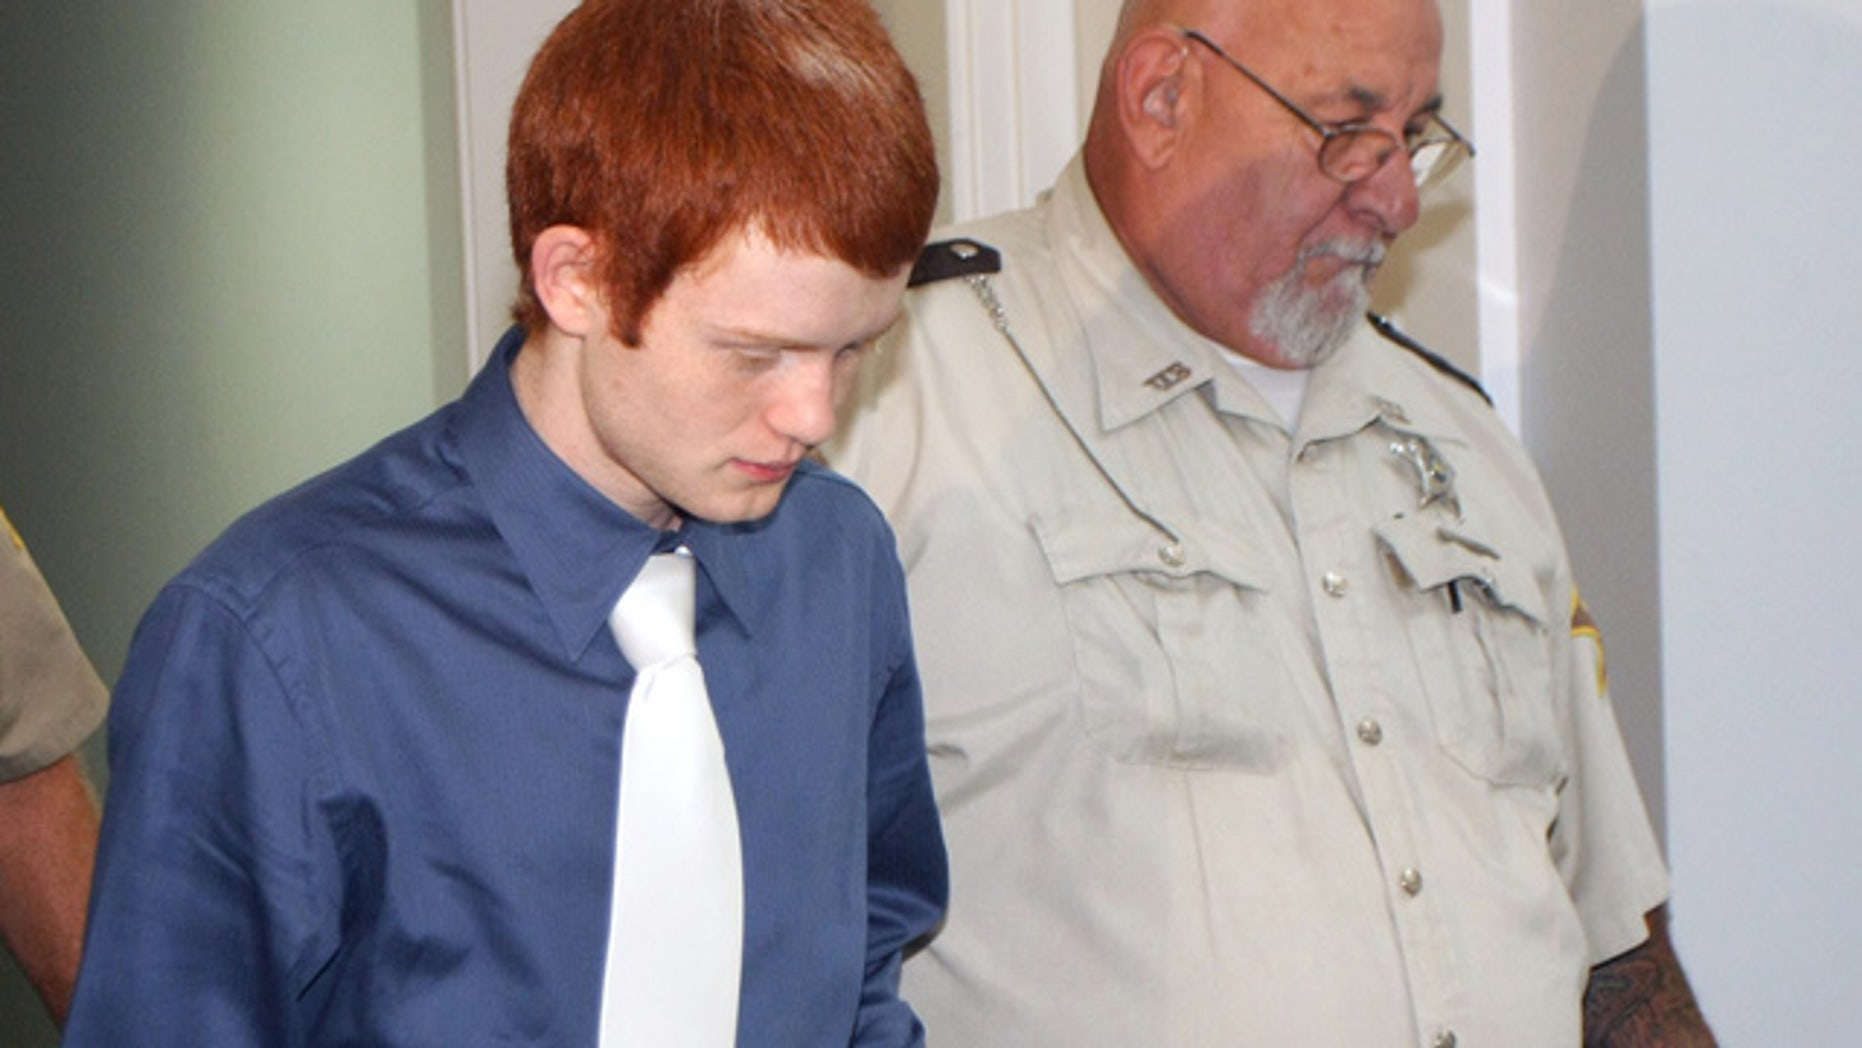 Sept. 15: Andrew Conley, left, is led into an Ohio County courtroom for his sentencing hearing in Rising Sun, Ind.